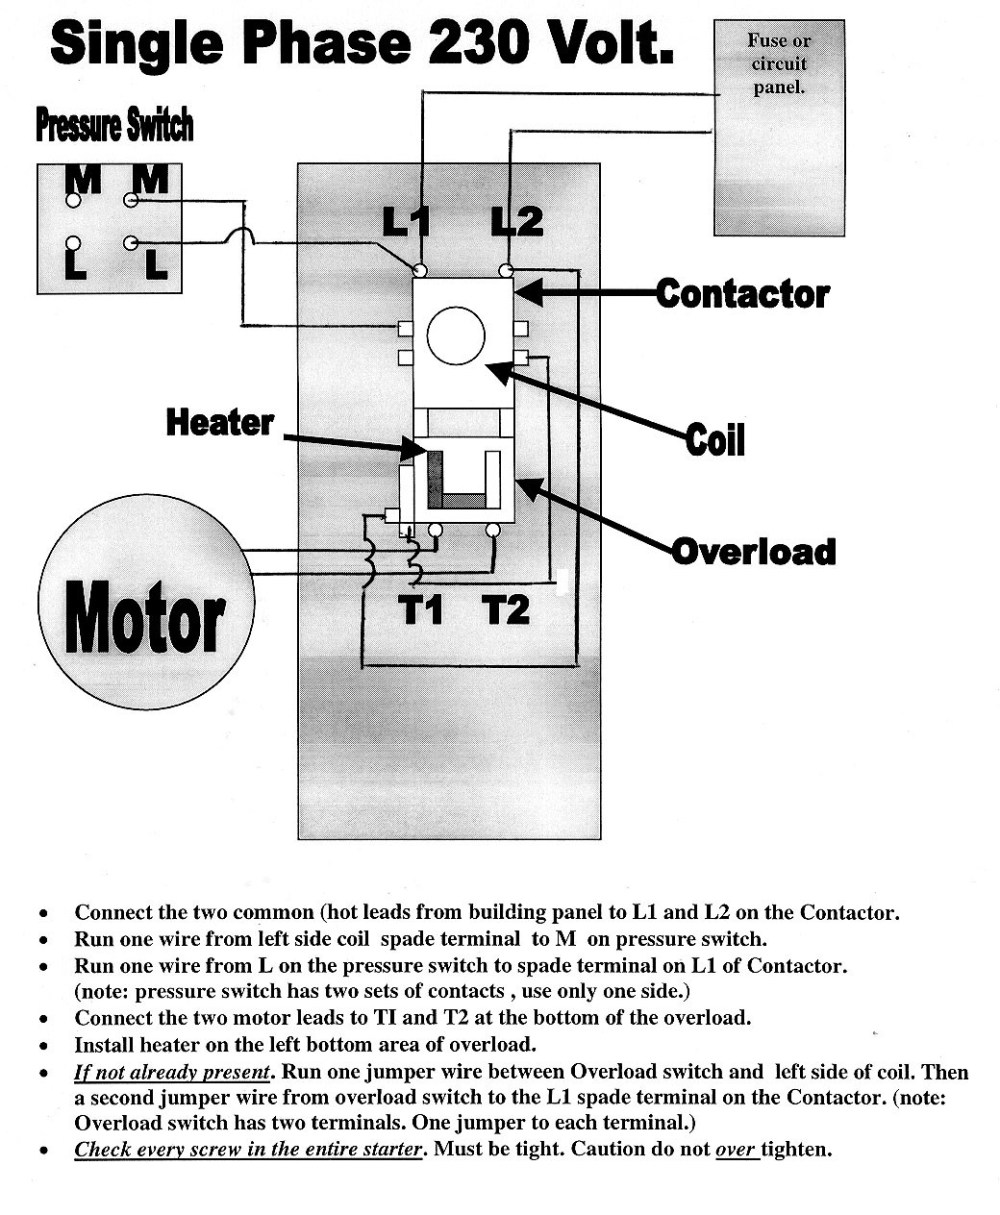 medium resolution of 3 phase electric motor starter wiring diagram free wiring diagram3 phase electric motor starter wiring diagram